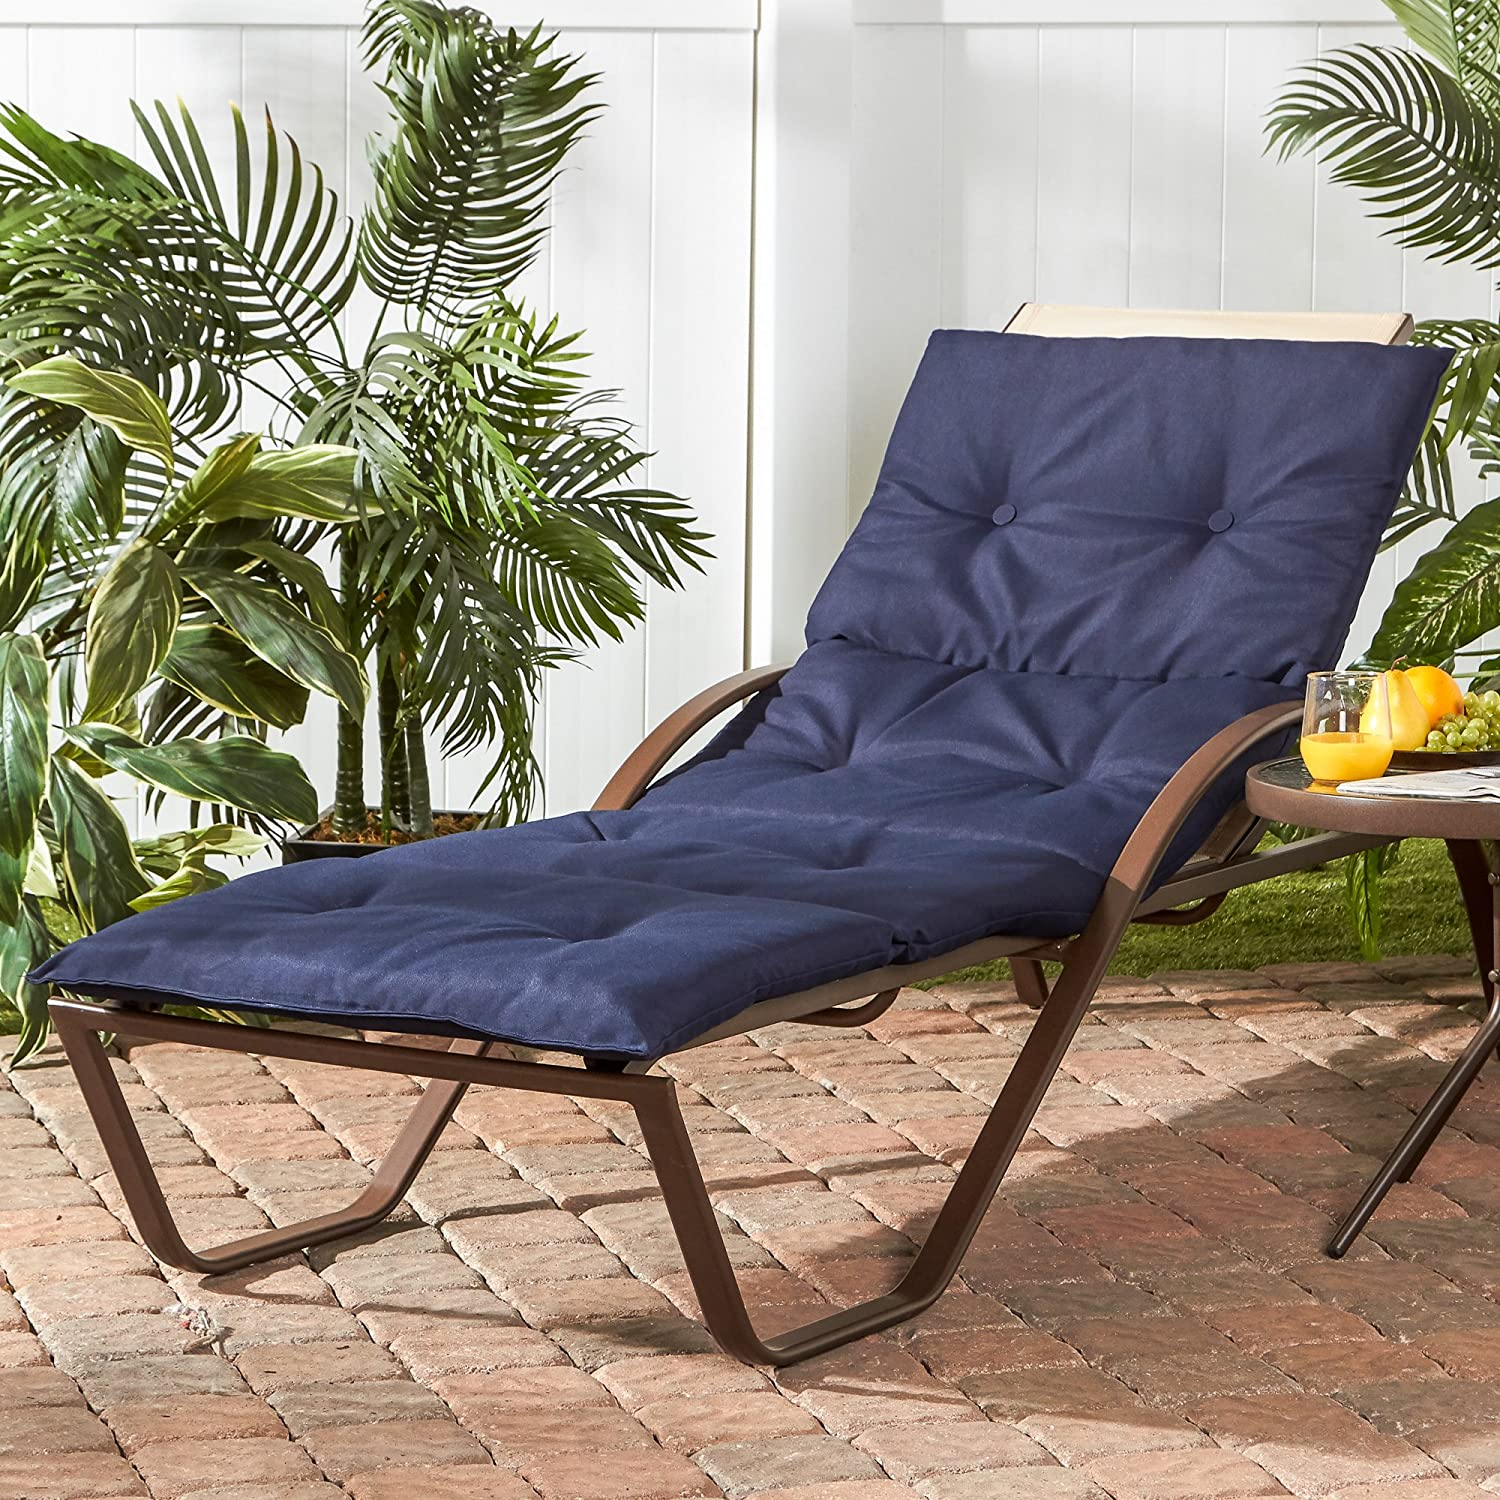 Greendale Home Fashions OC8665-NAVY Outdoor Lightweight Chaise Cushion, Navy